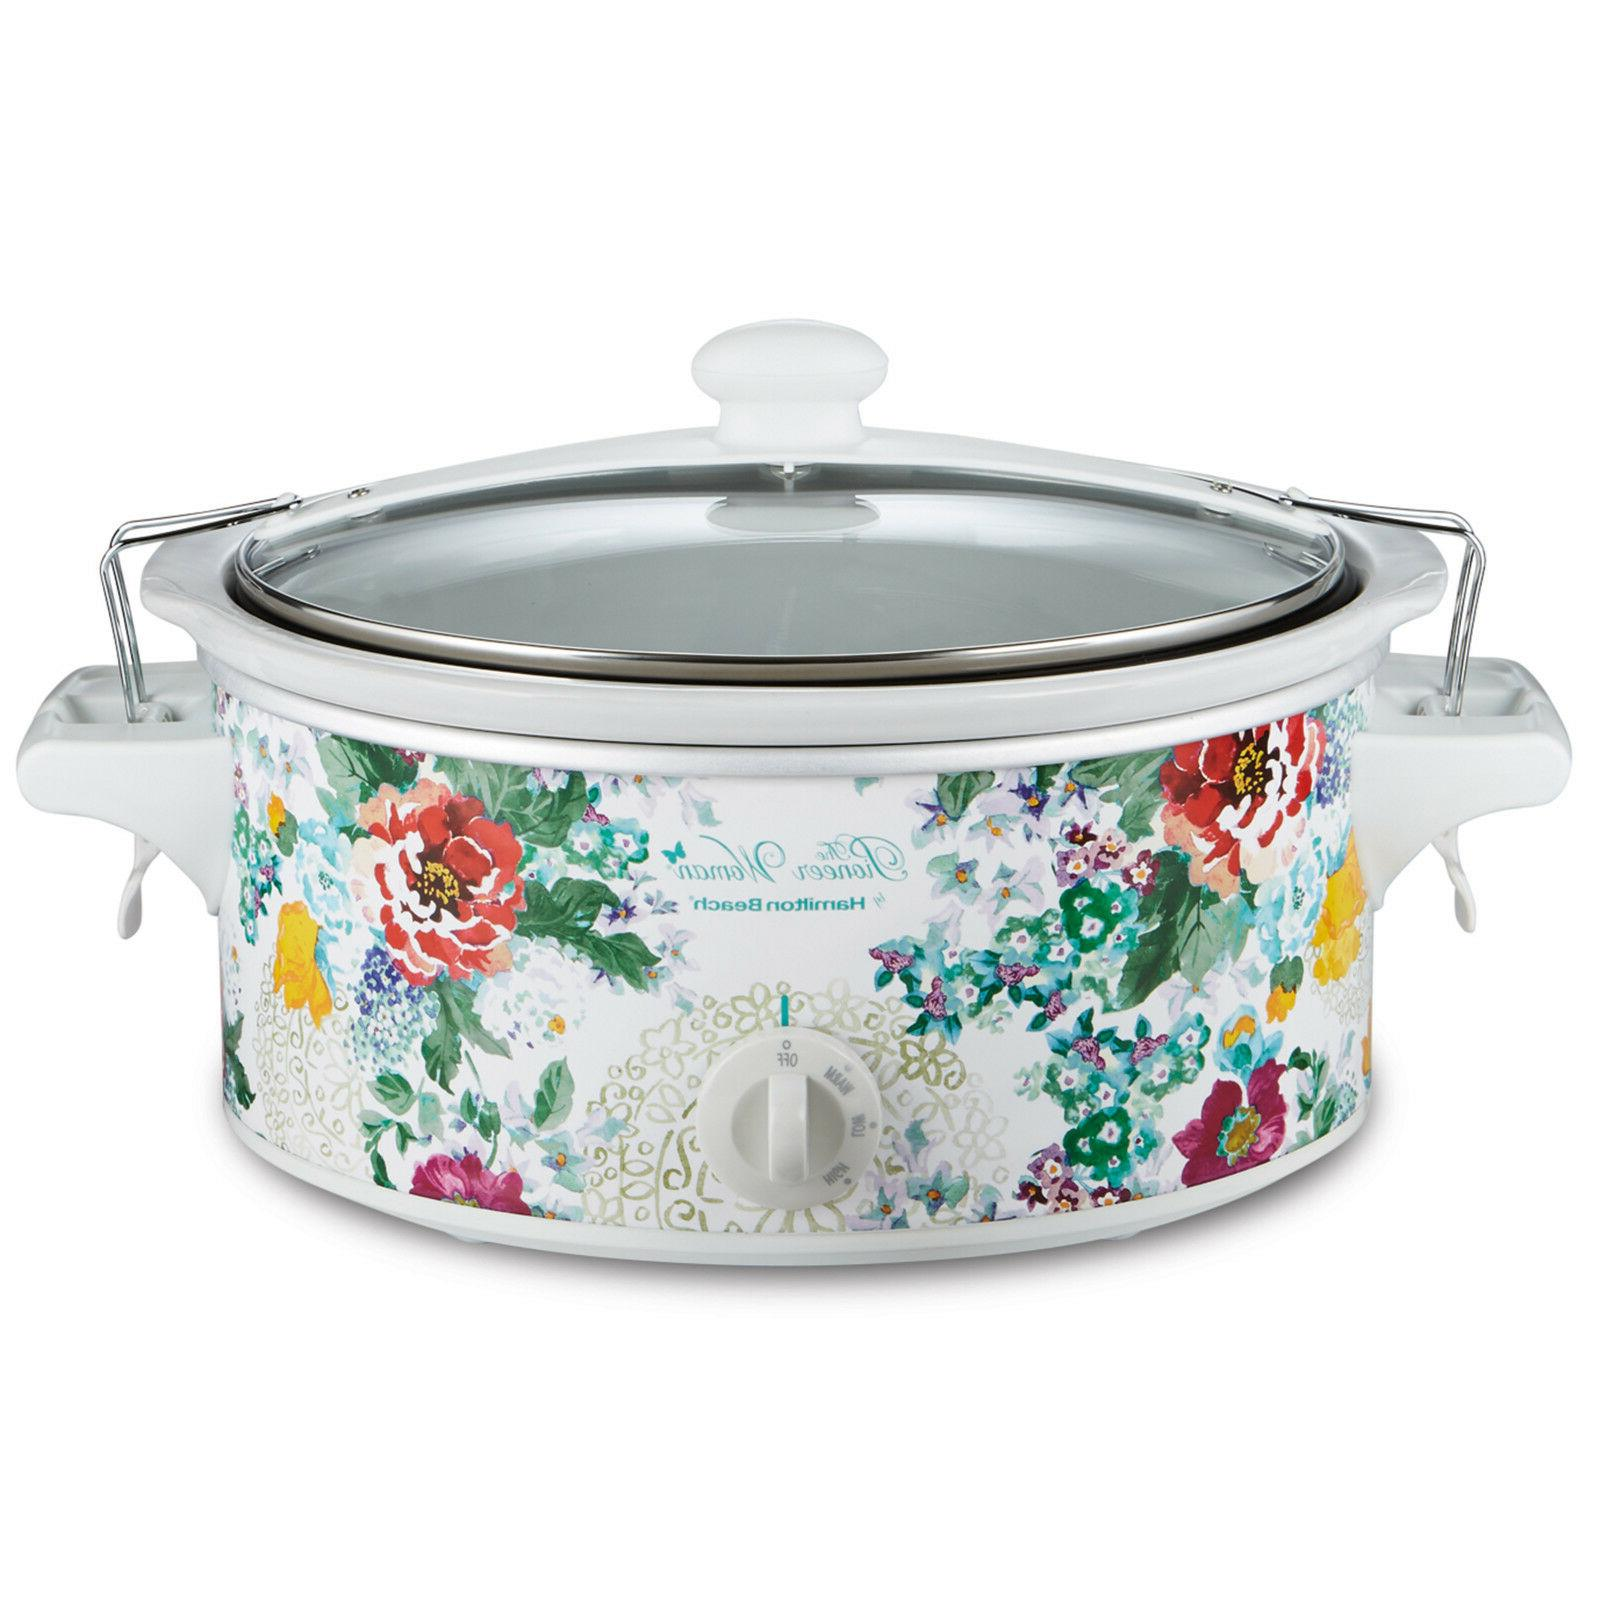 The Pioneer QT Country Slow Cooker Lid